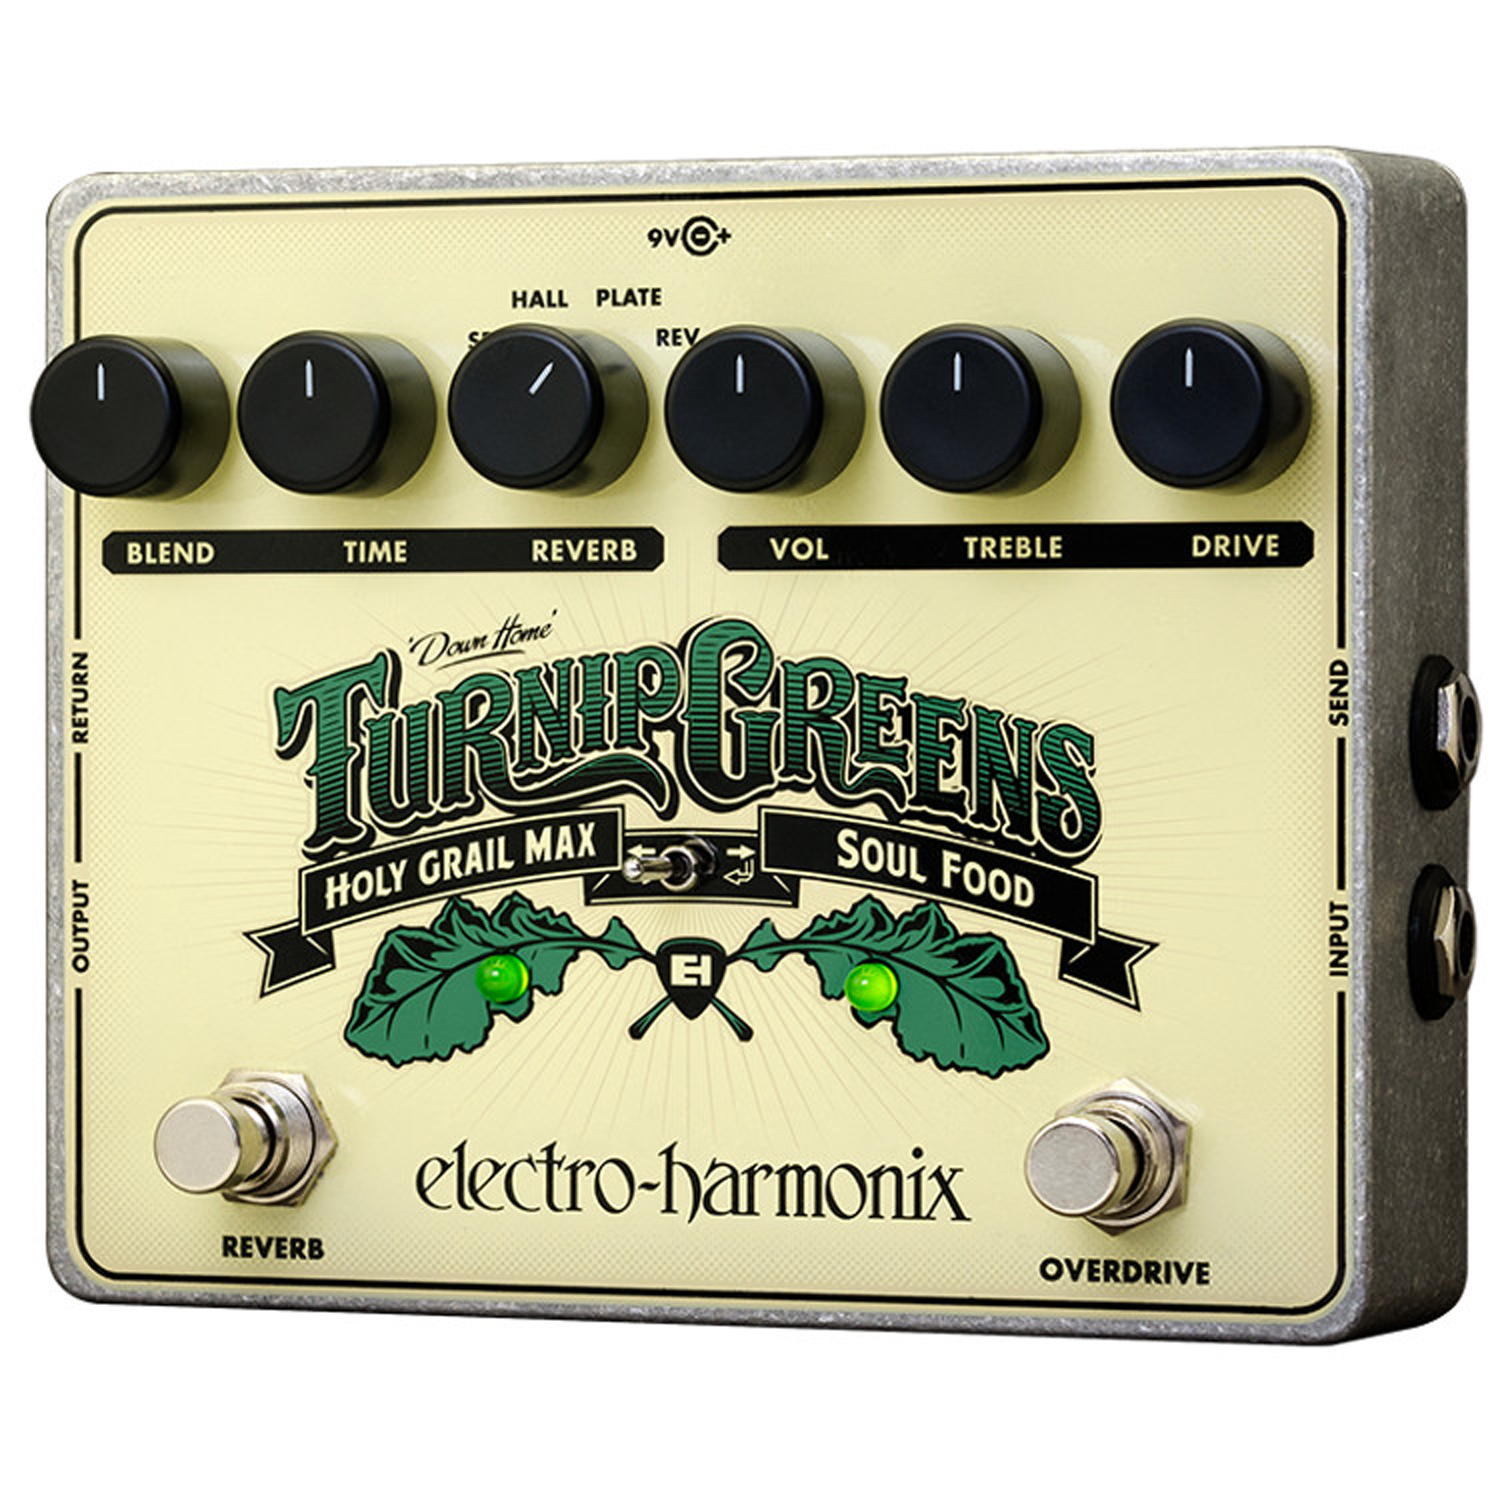 Electro Harmonix Super Ego Synth Engine Guitar Pedal 2016 The Fuzz Wah Effect Turnip Greens Soul Food Holy Grail Max Combo Overdrive Reverb Effects Pedalaccessories Pedals Delay